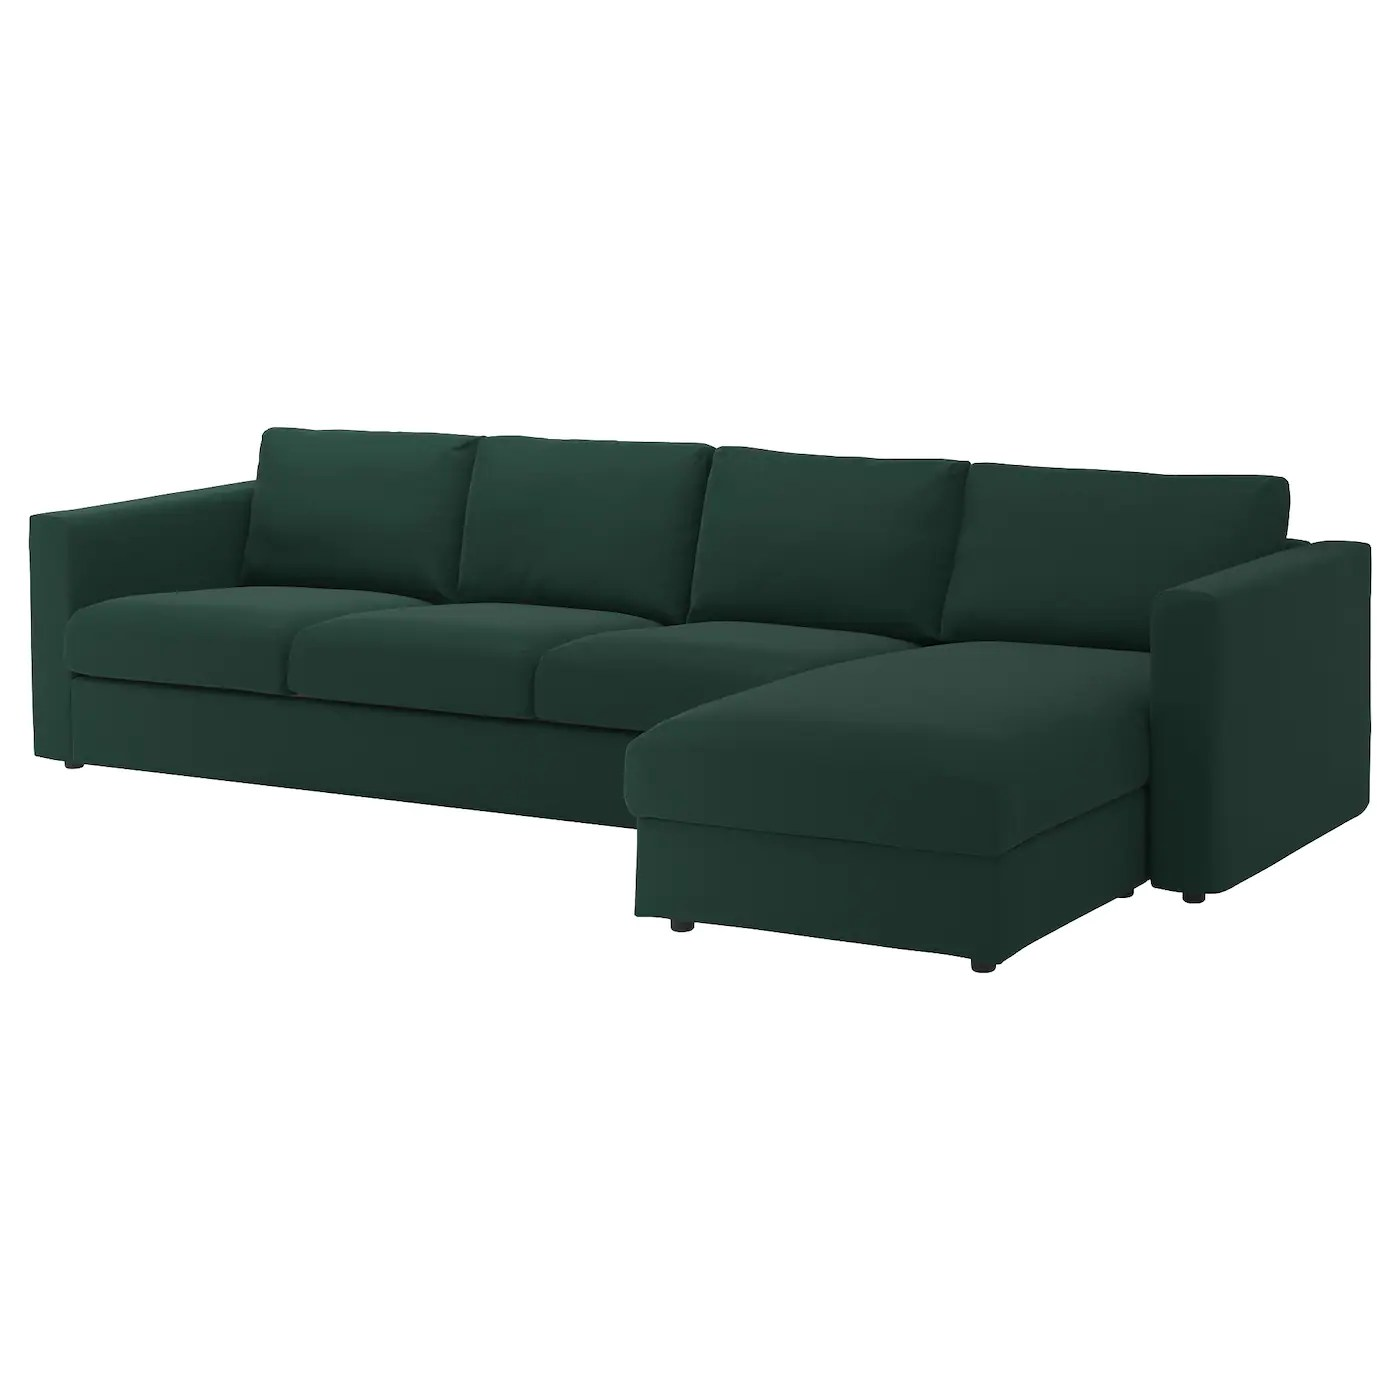 four seat sofa with chaise removal nyc vimle 4 longue gunnared dark green